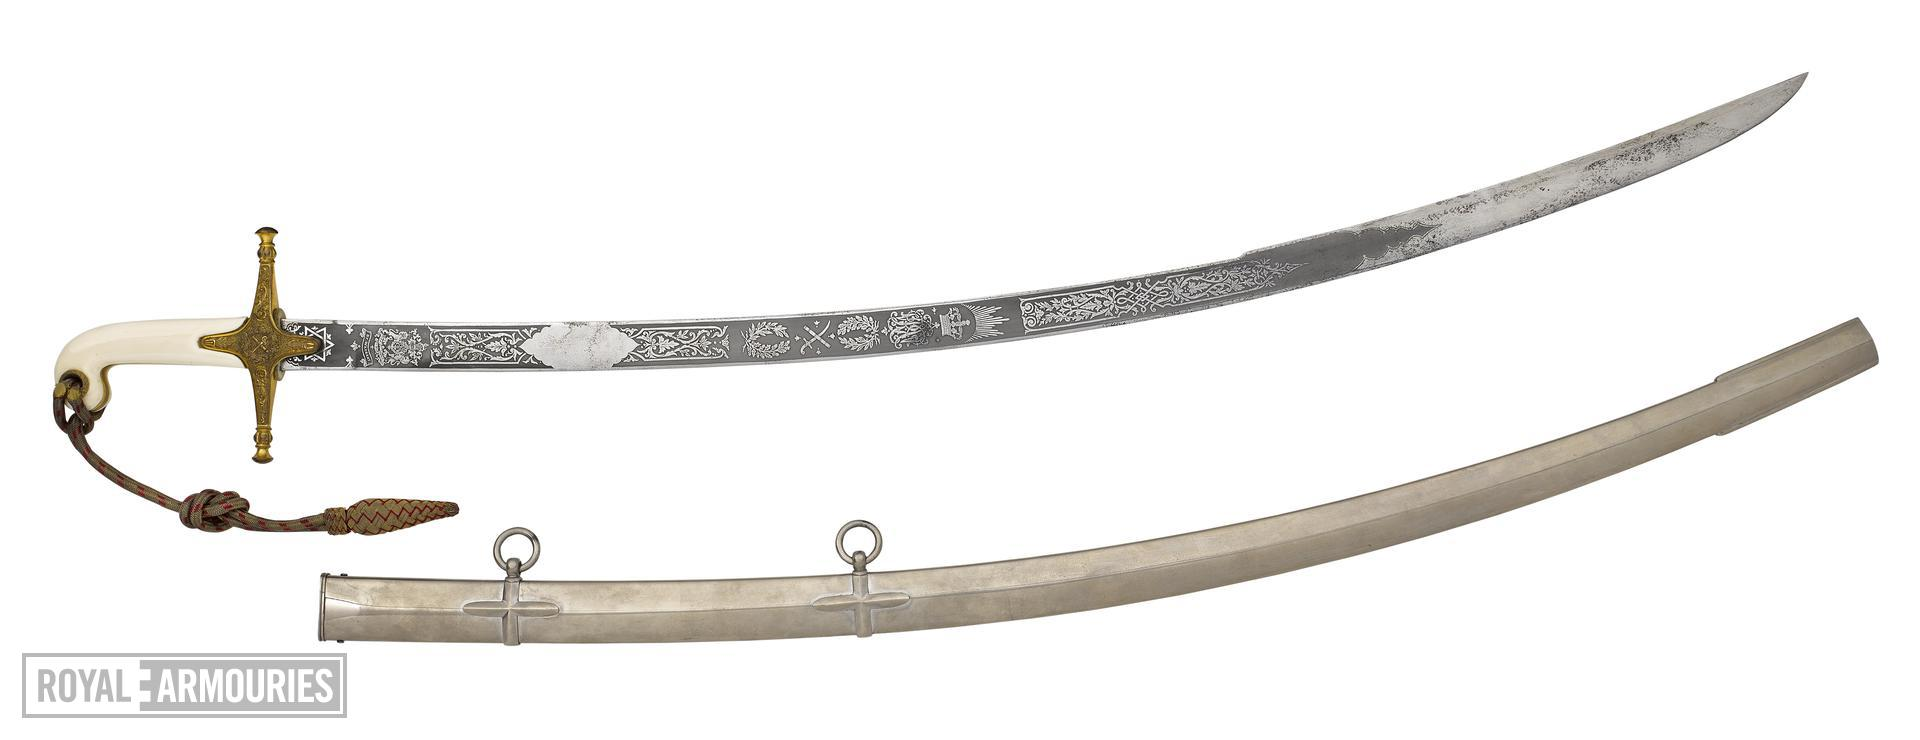 Lord Kitchener's sword and scabbard - Kitchener's Pattern 1831 General Officer's Sword